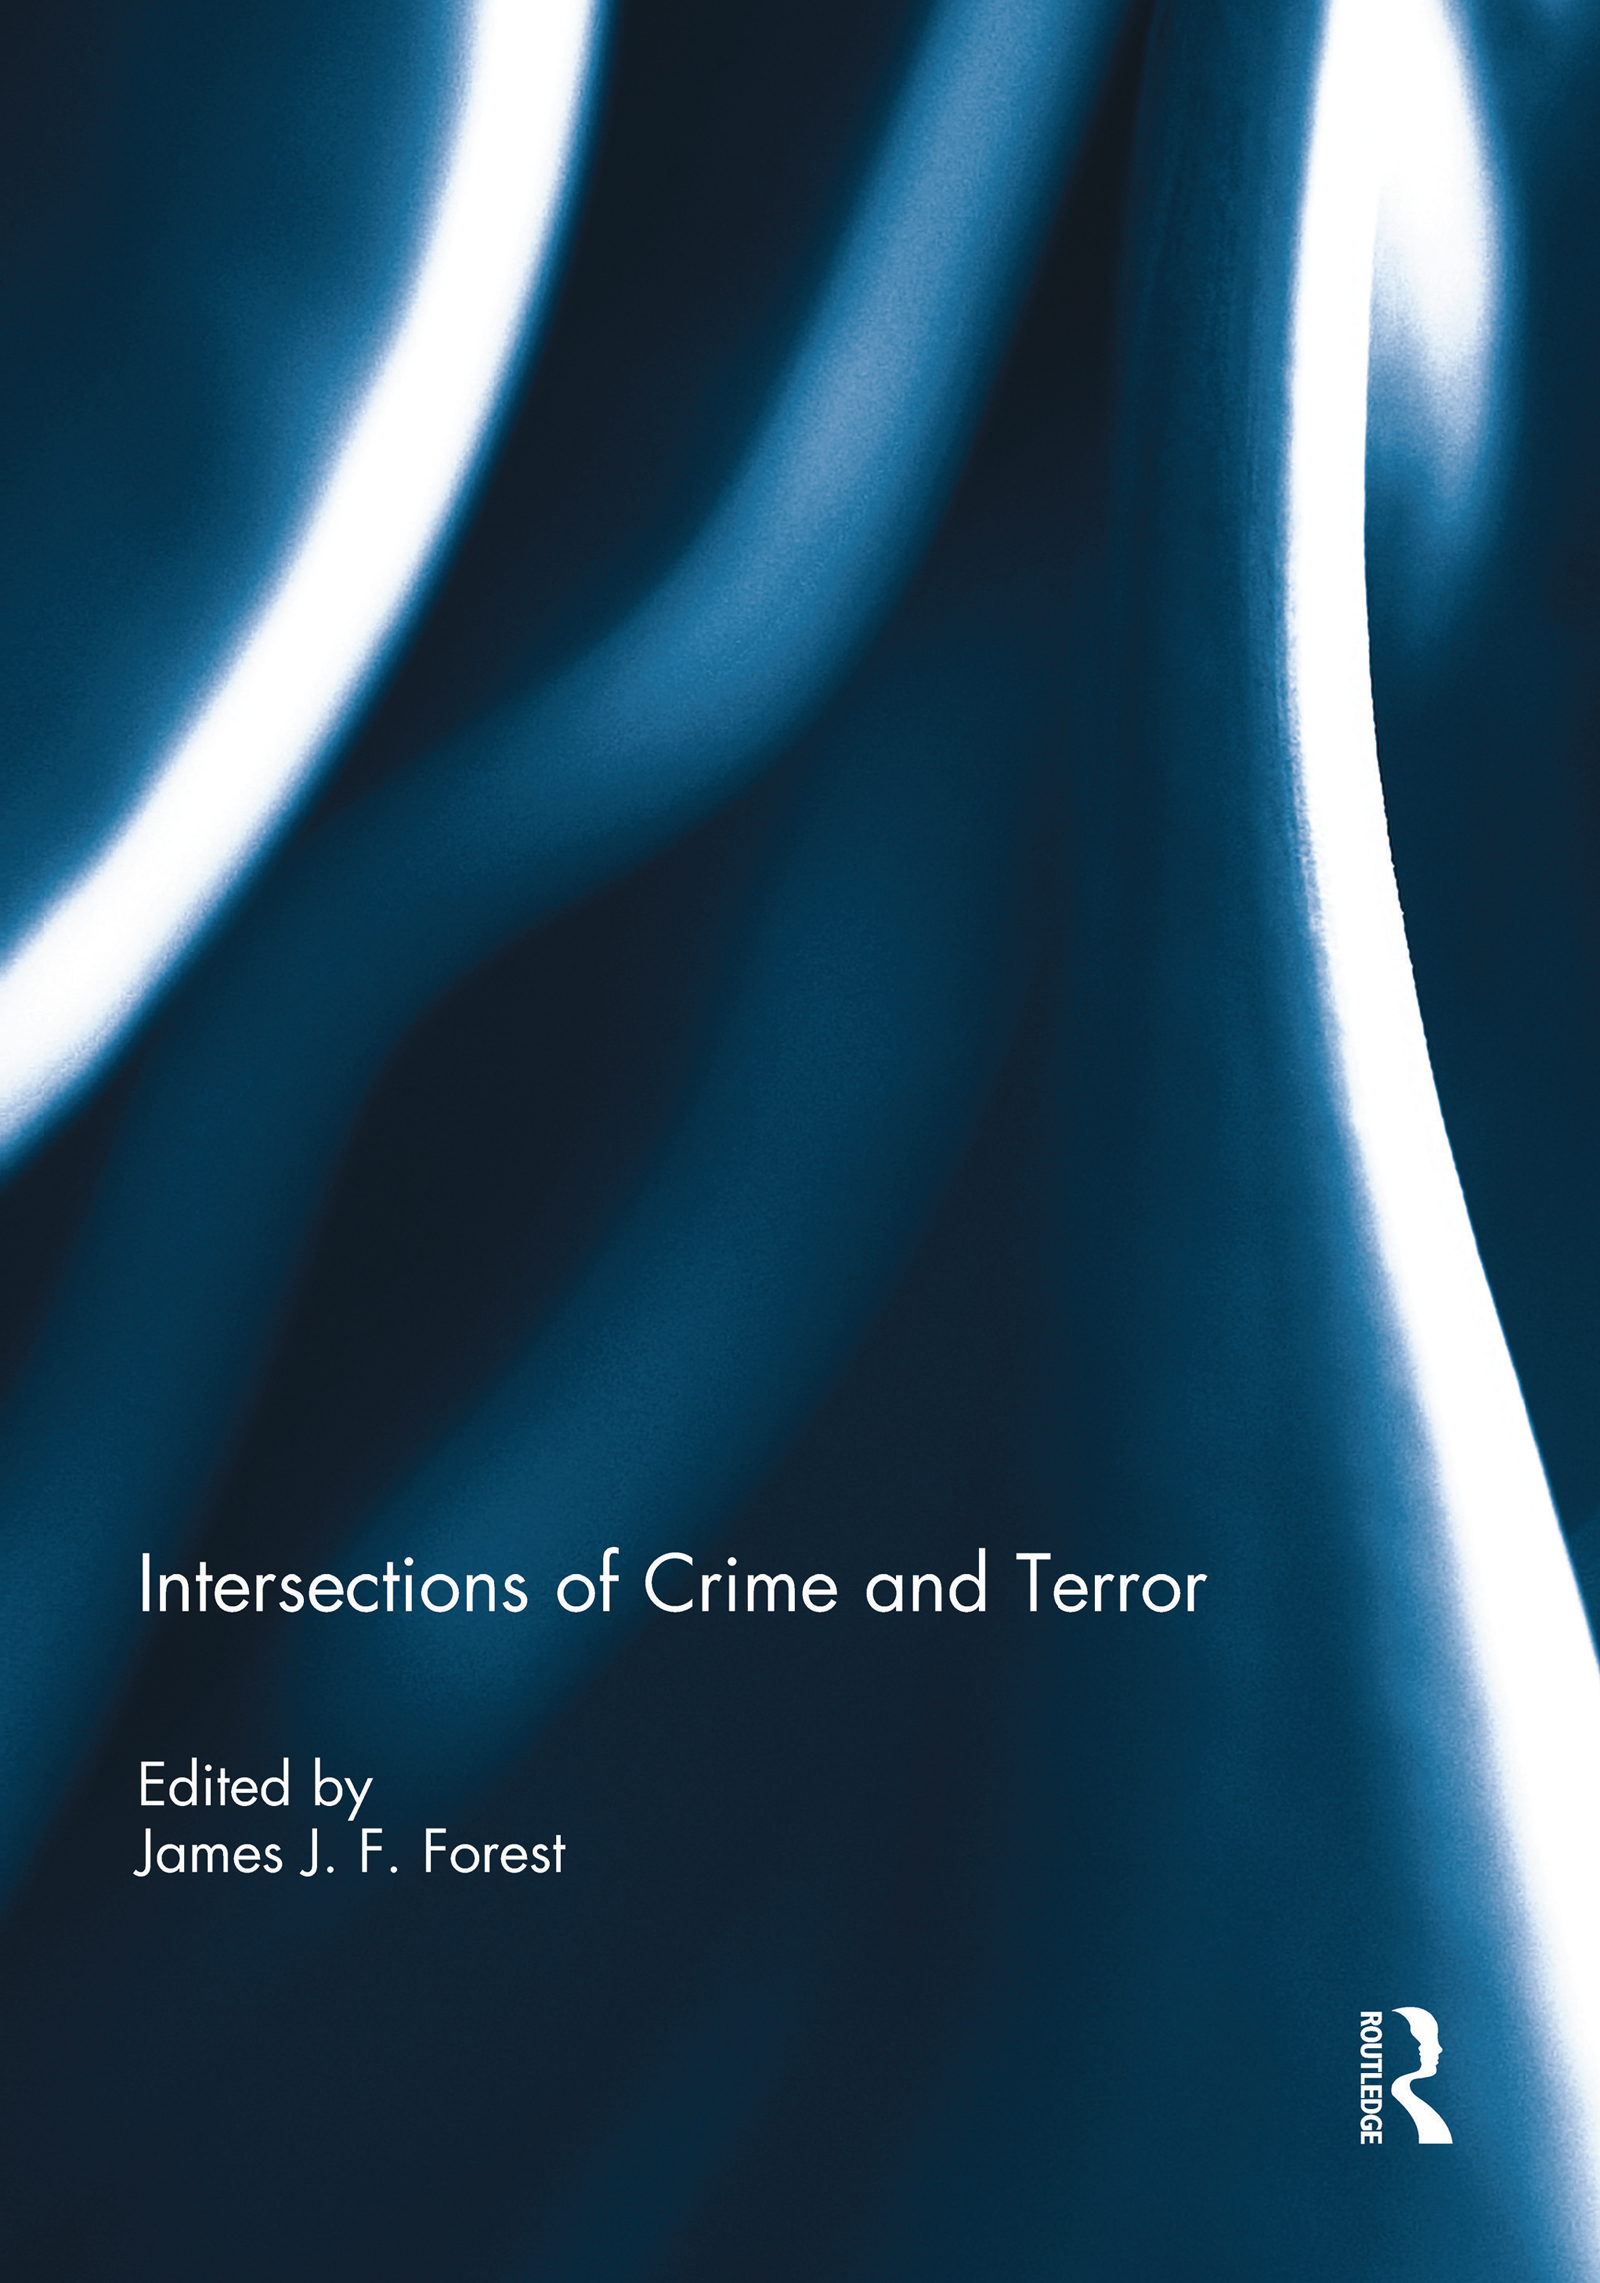 Intersections of Crime and Terror